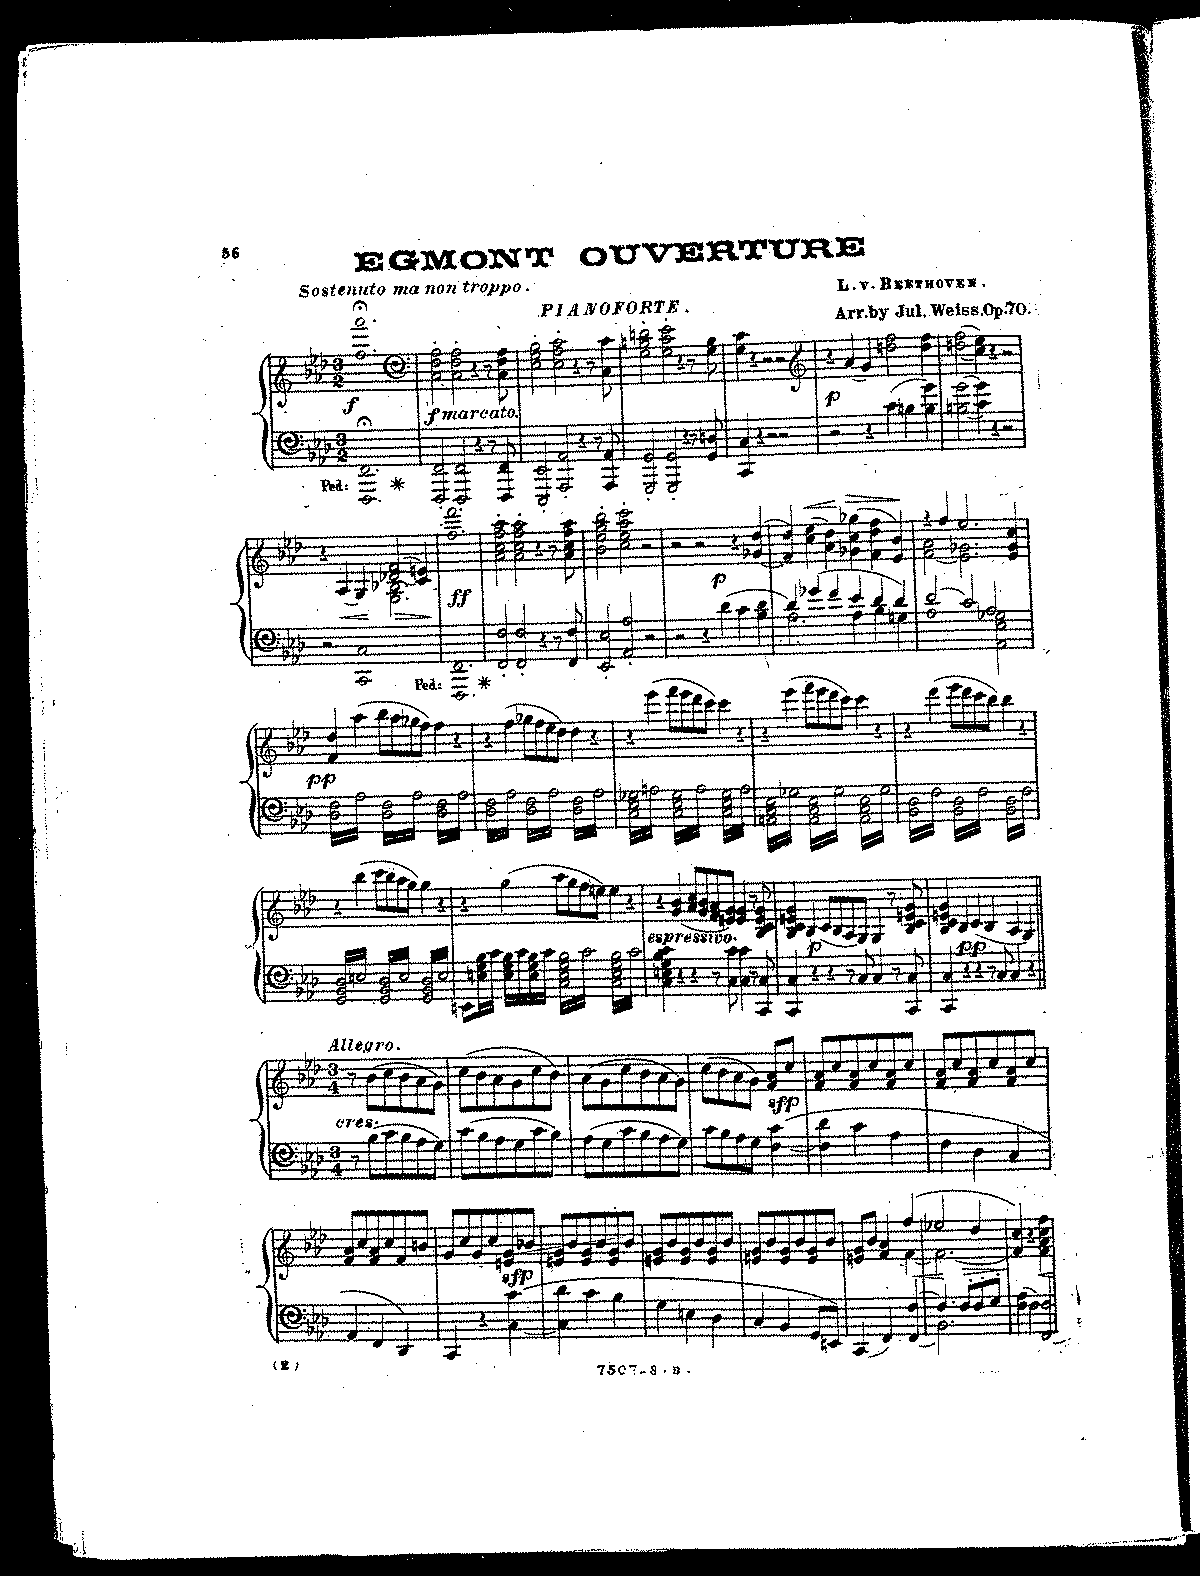 Beethoven-Weiss Egmont Overture.pdf